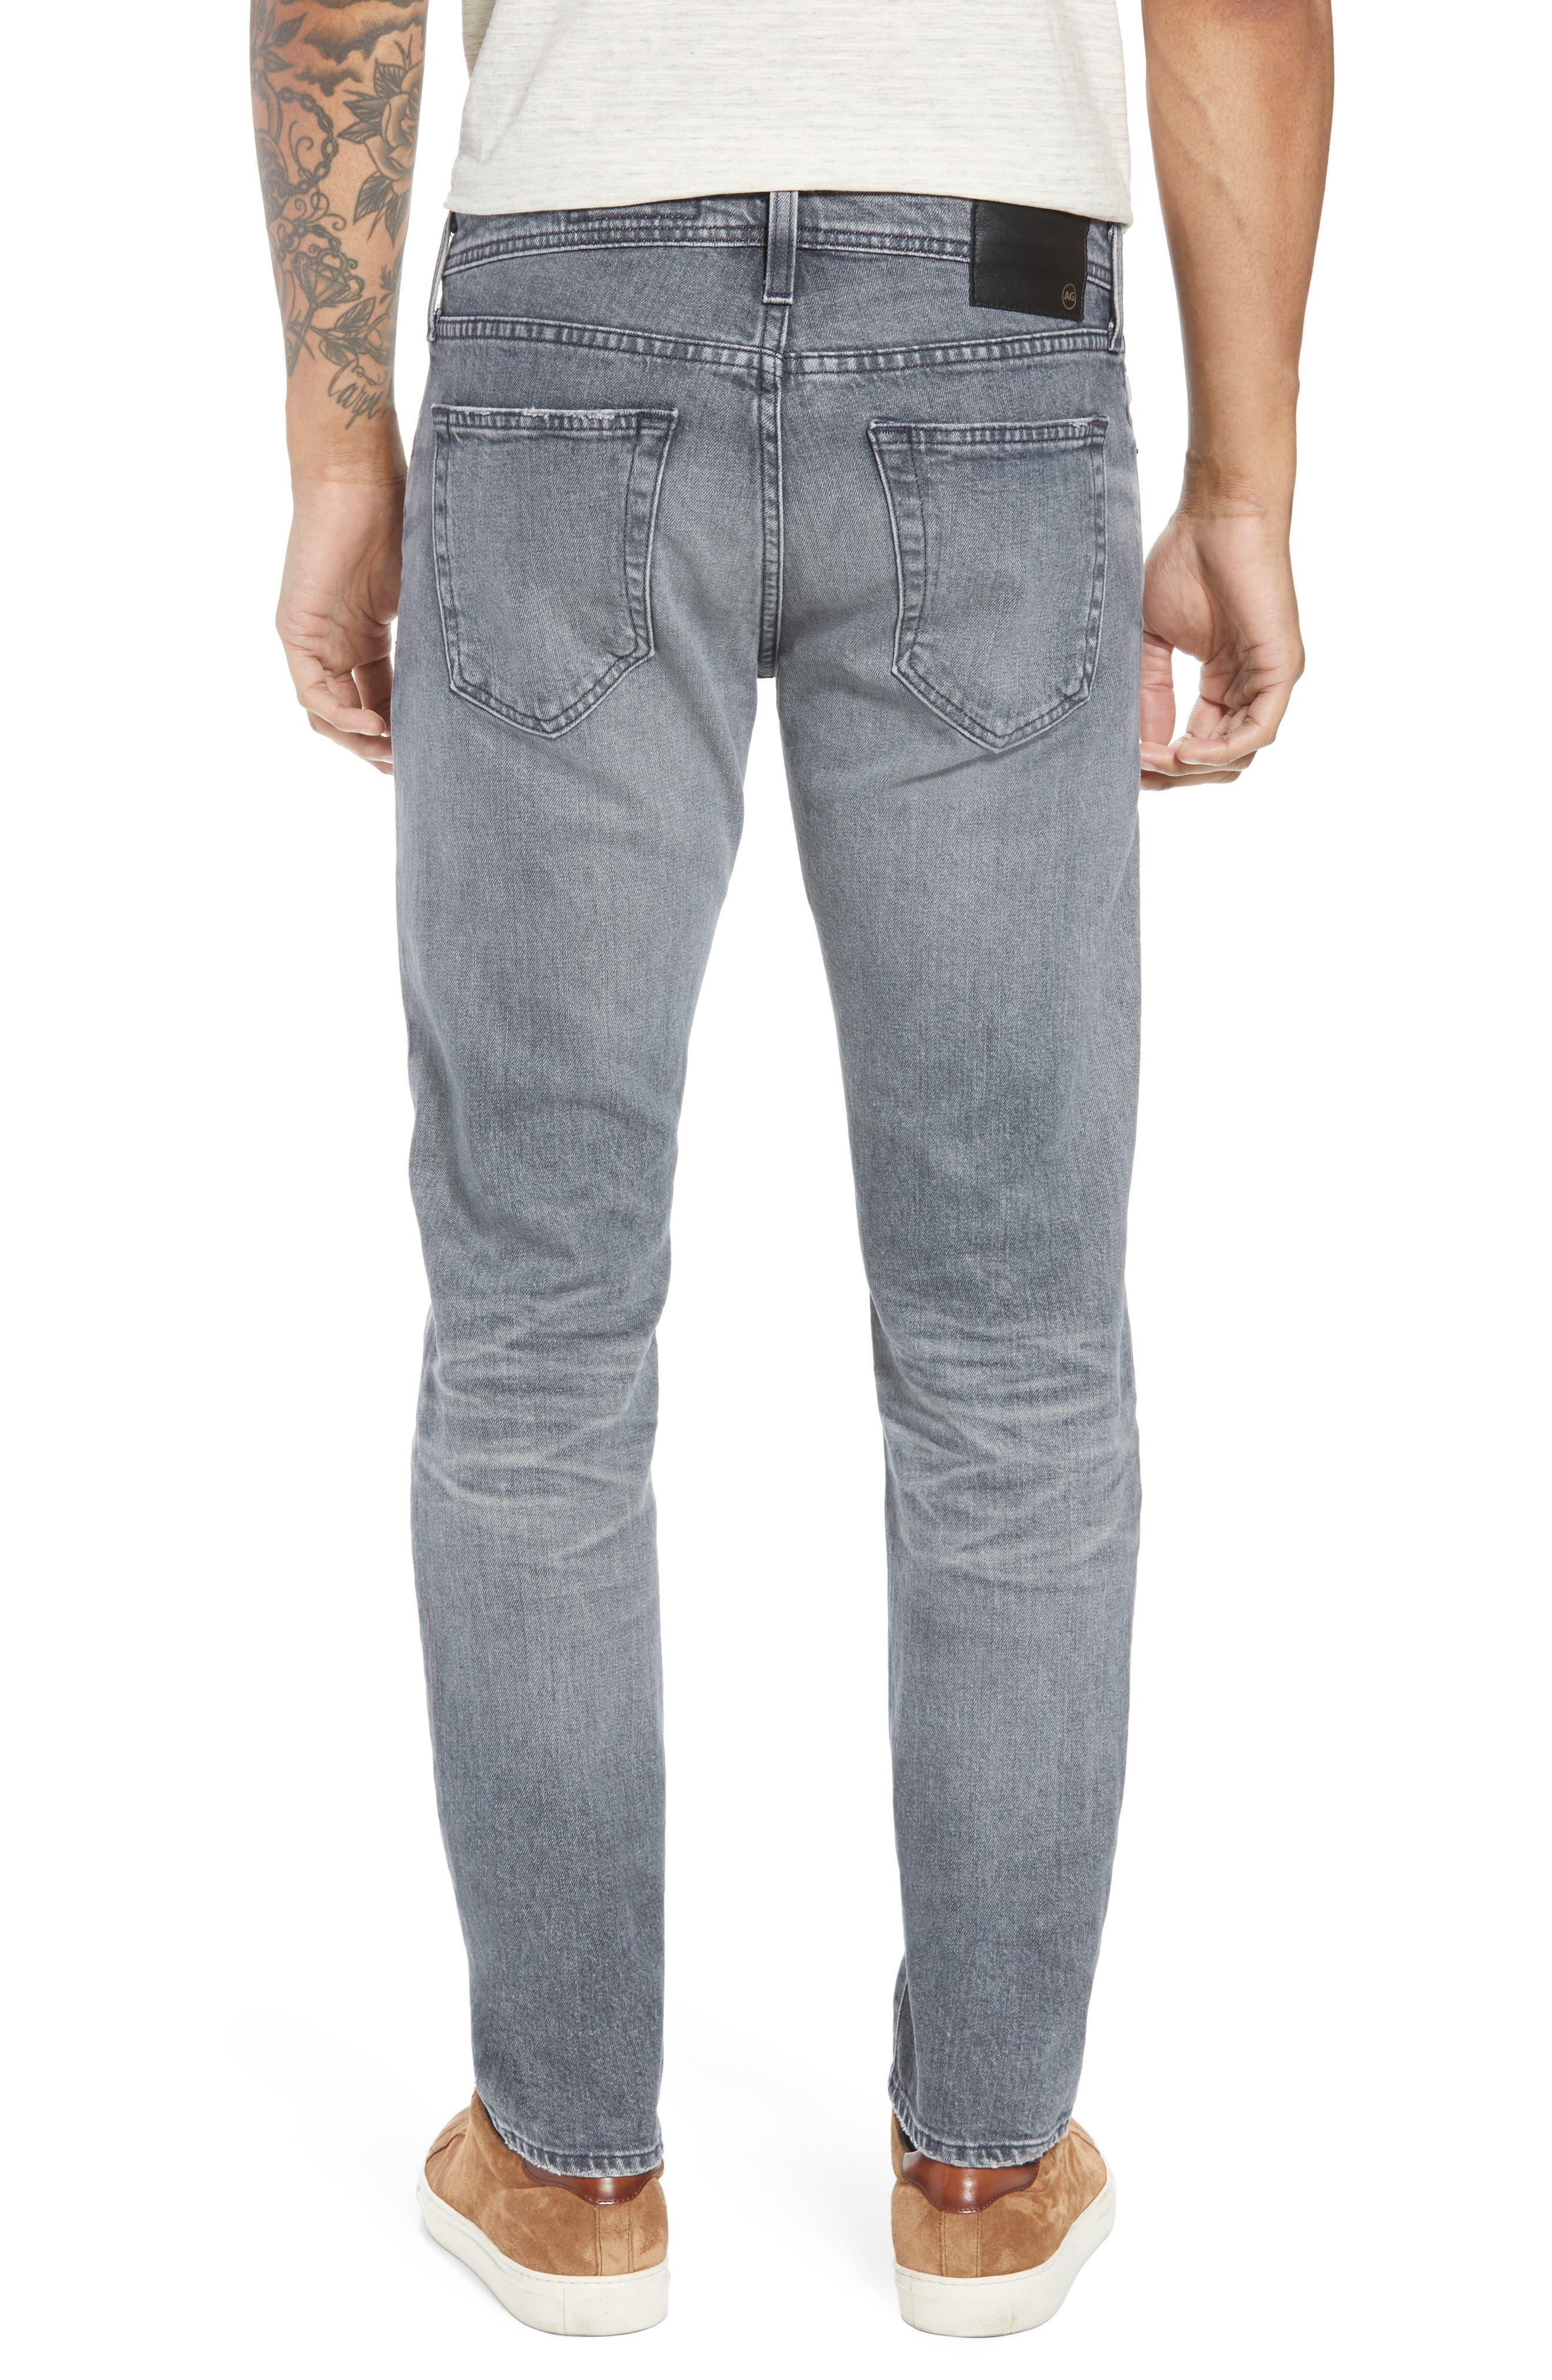 Tellis Slim Fit Jeans,                             Alternate thumbnail 2, color,                             020